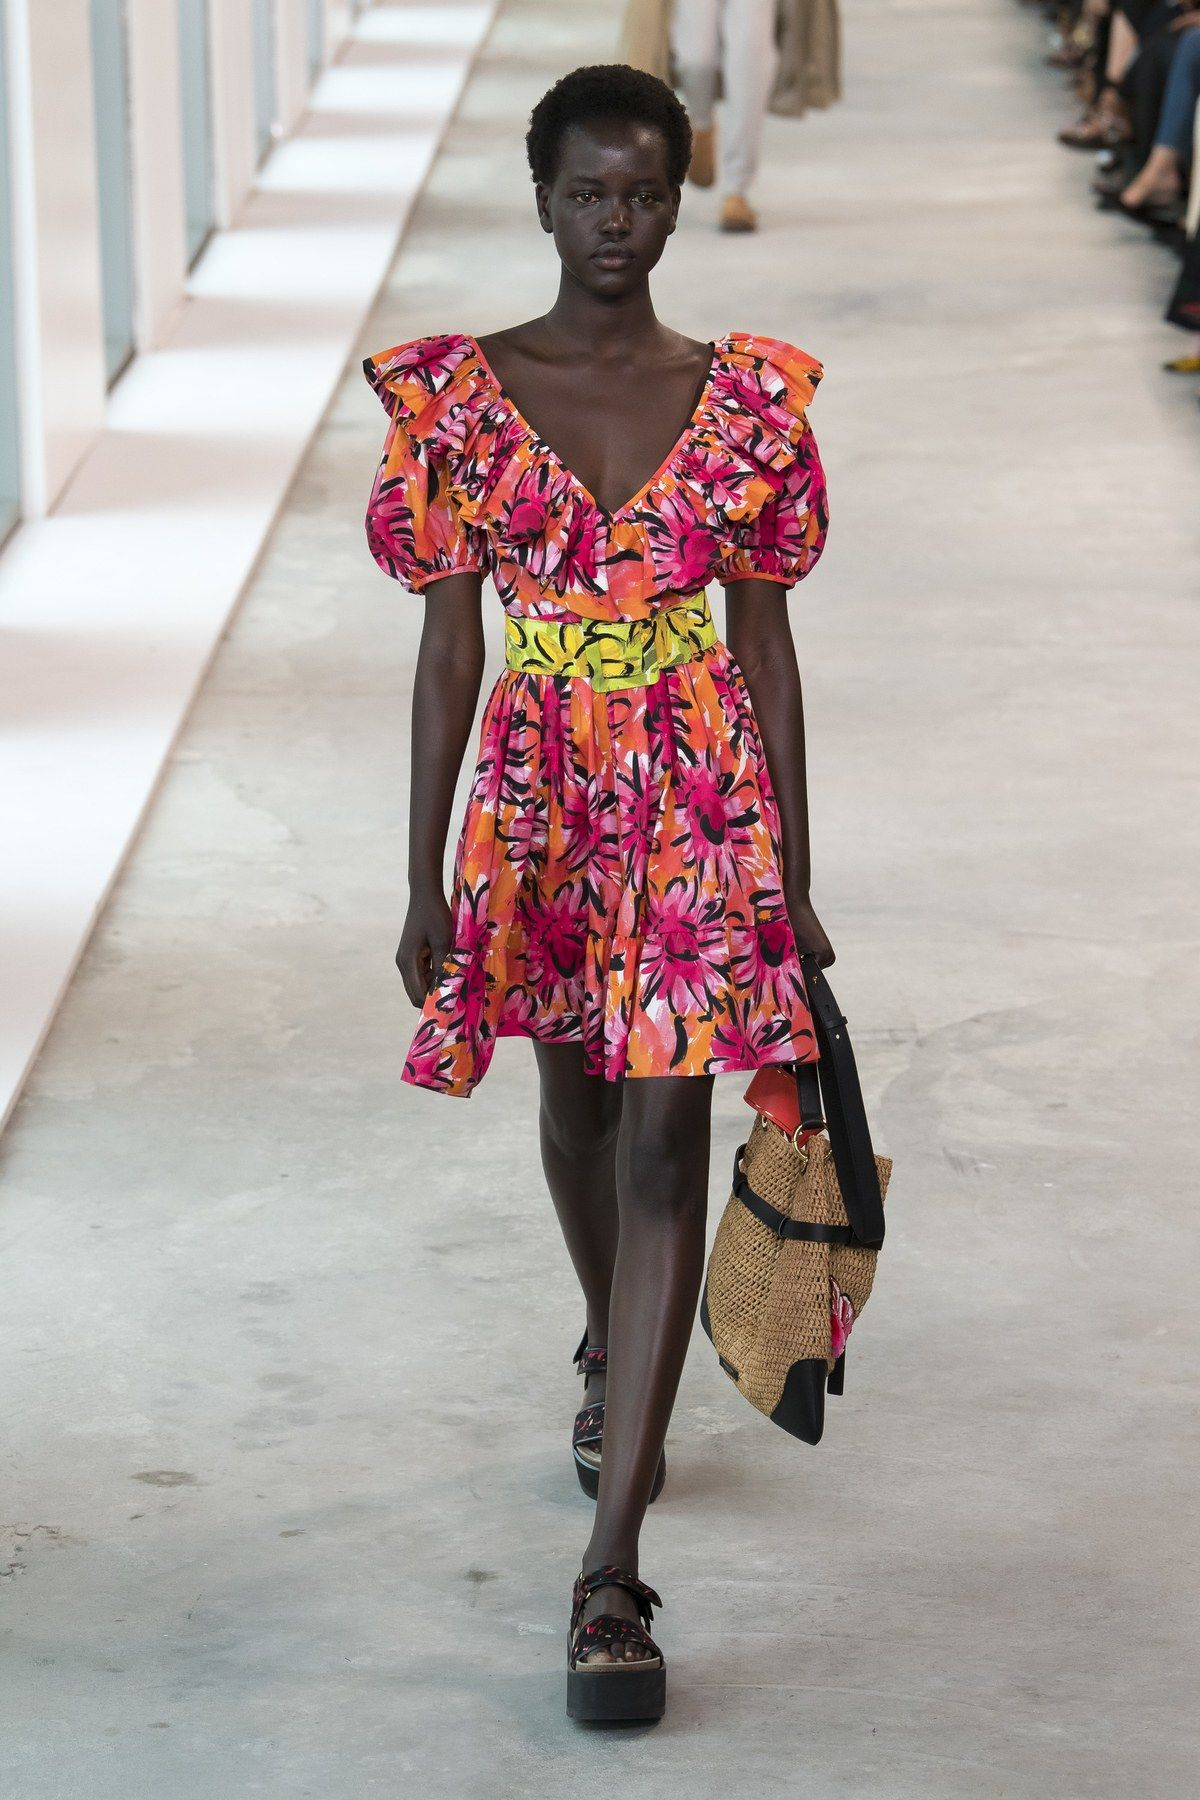 Fashion style Kors michael spring runway review for girls